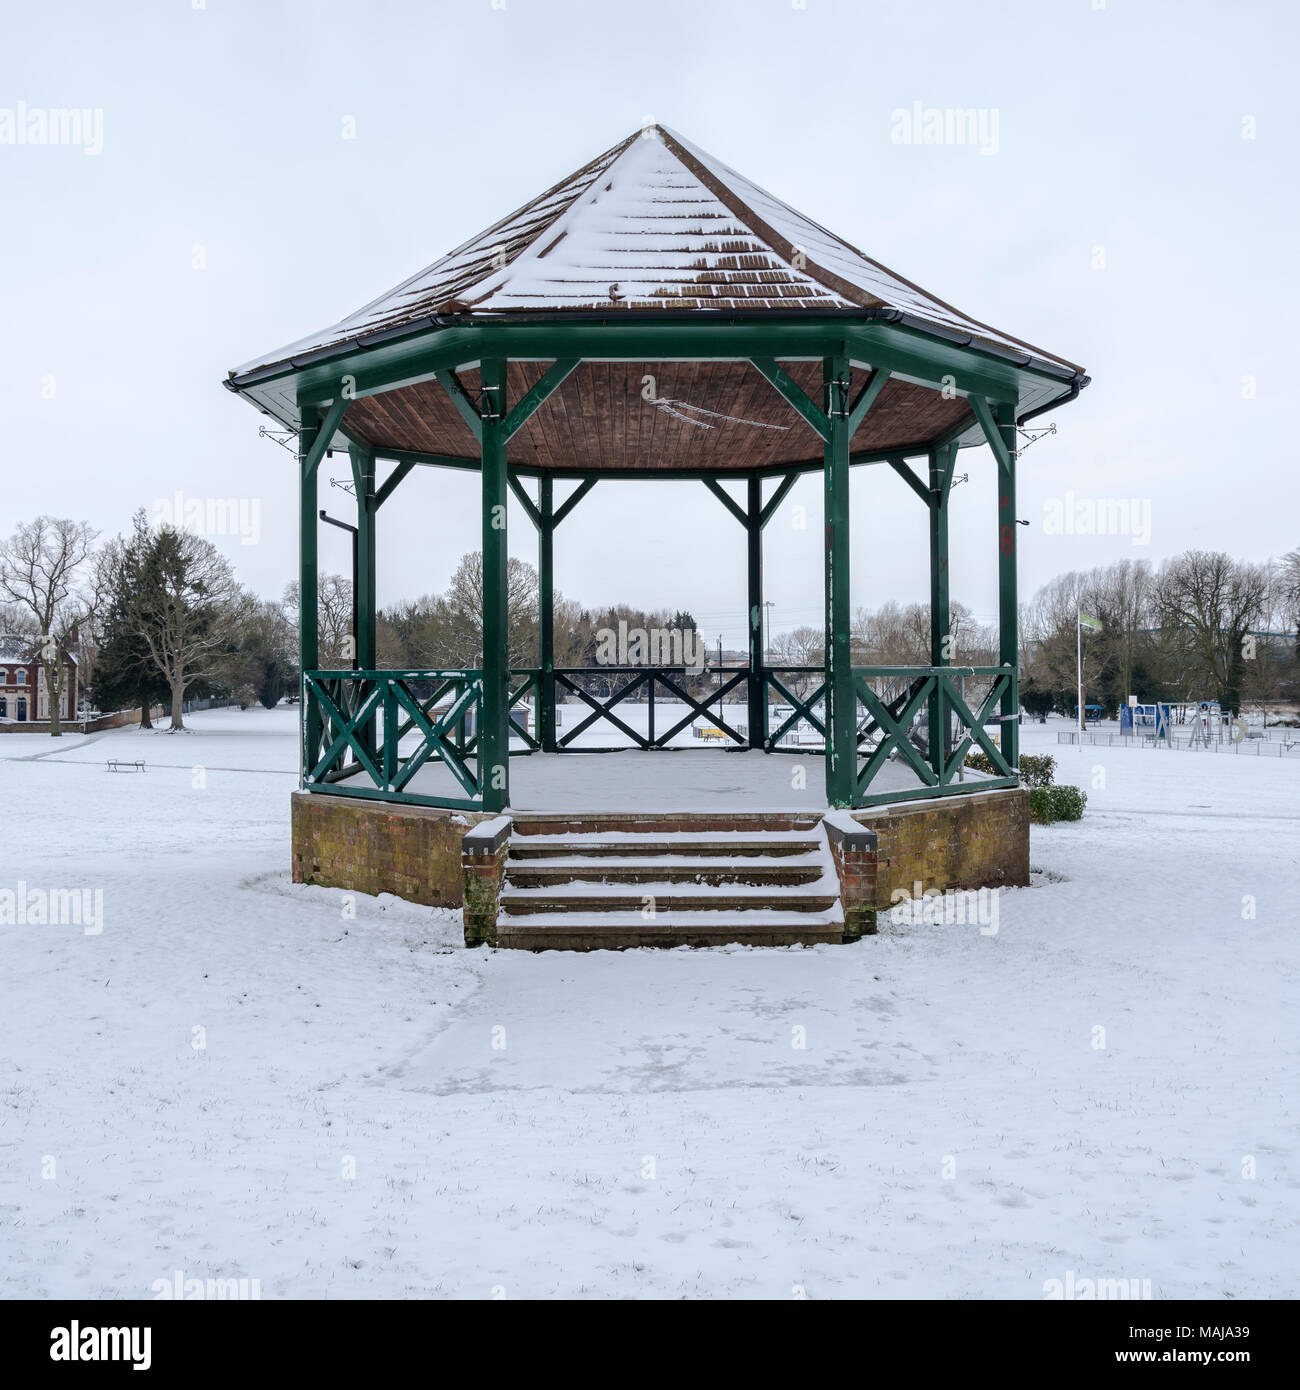 Bandstand in winter - Stock Image